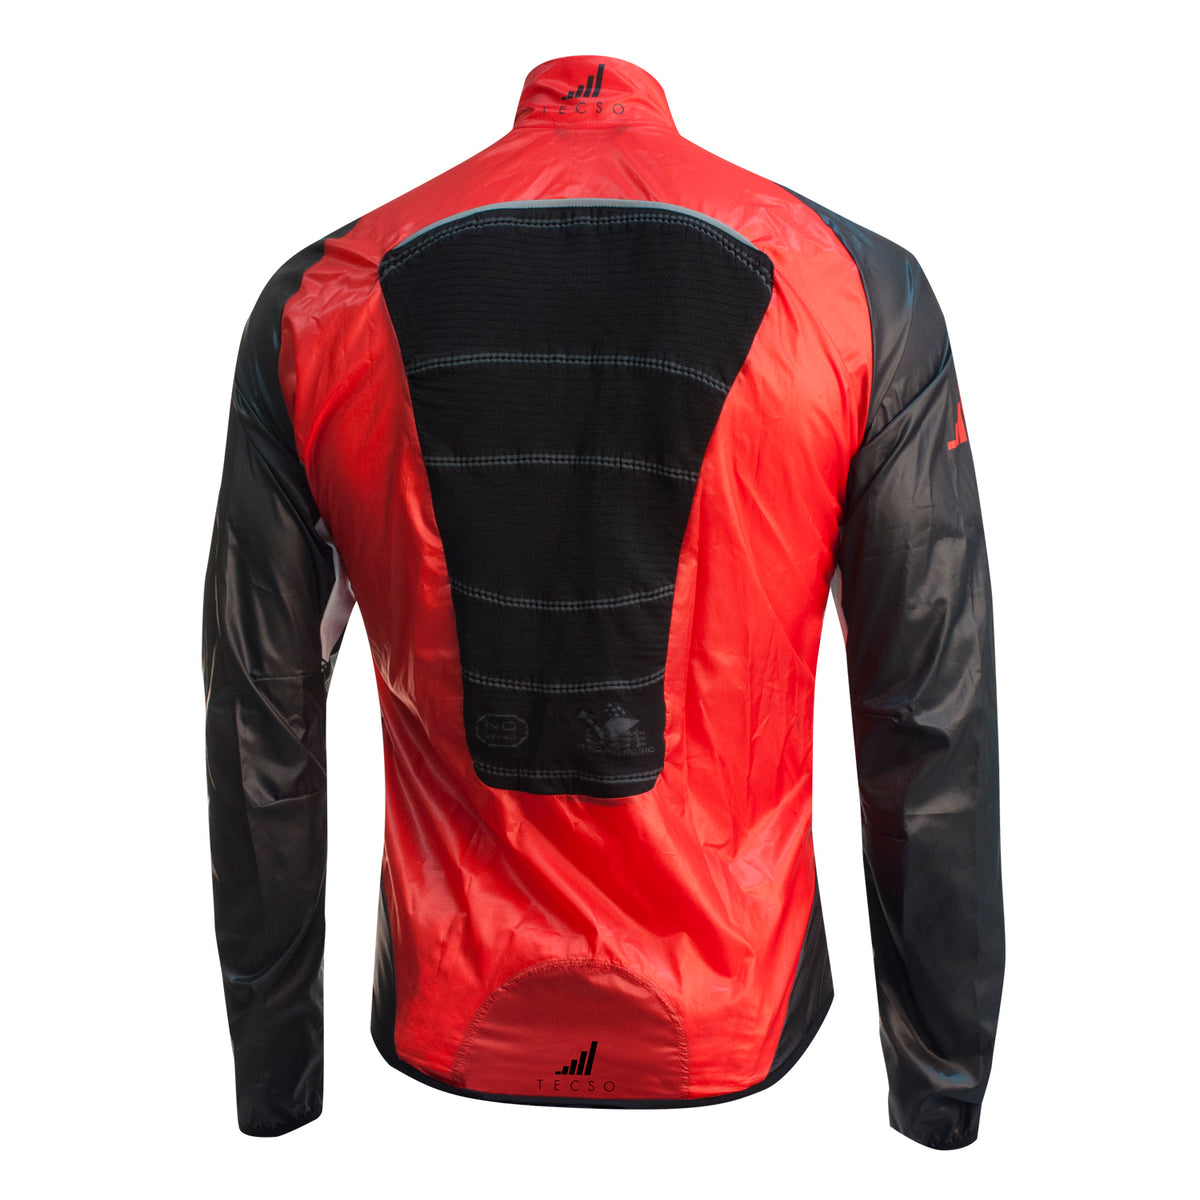 RAIN AND WIND BIKE JACKET